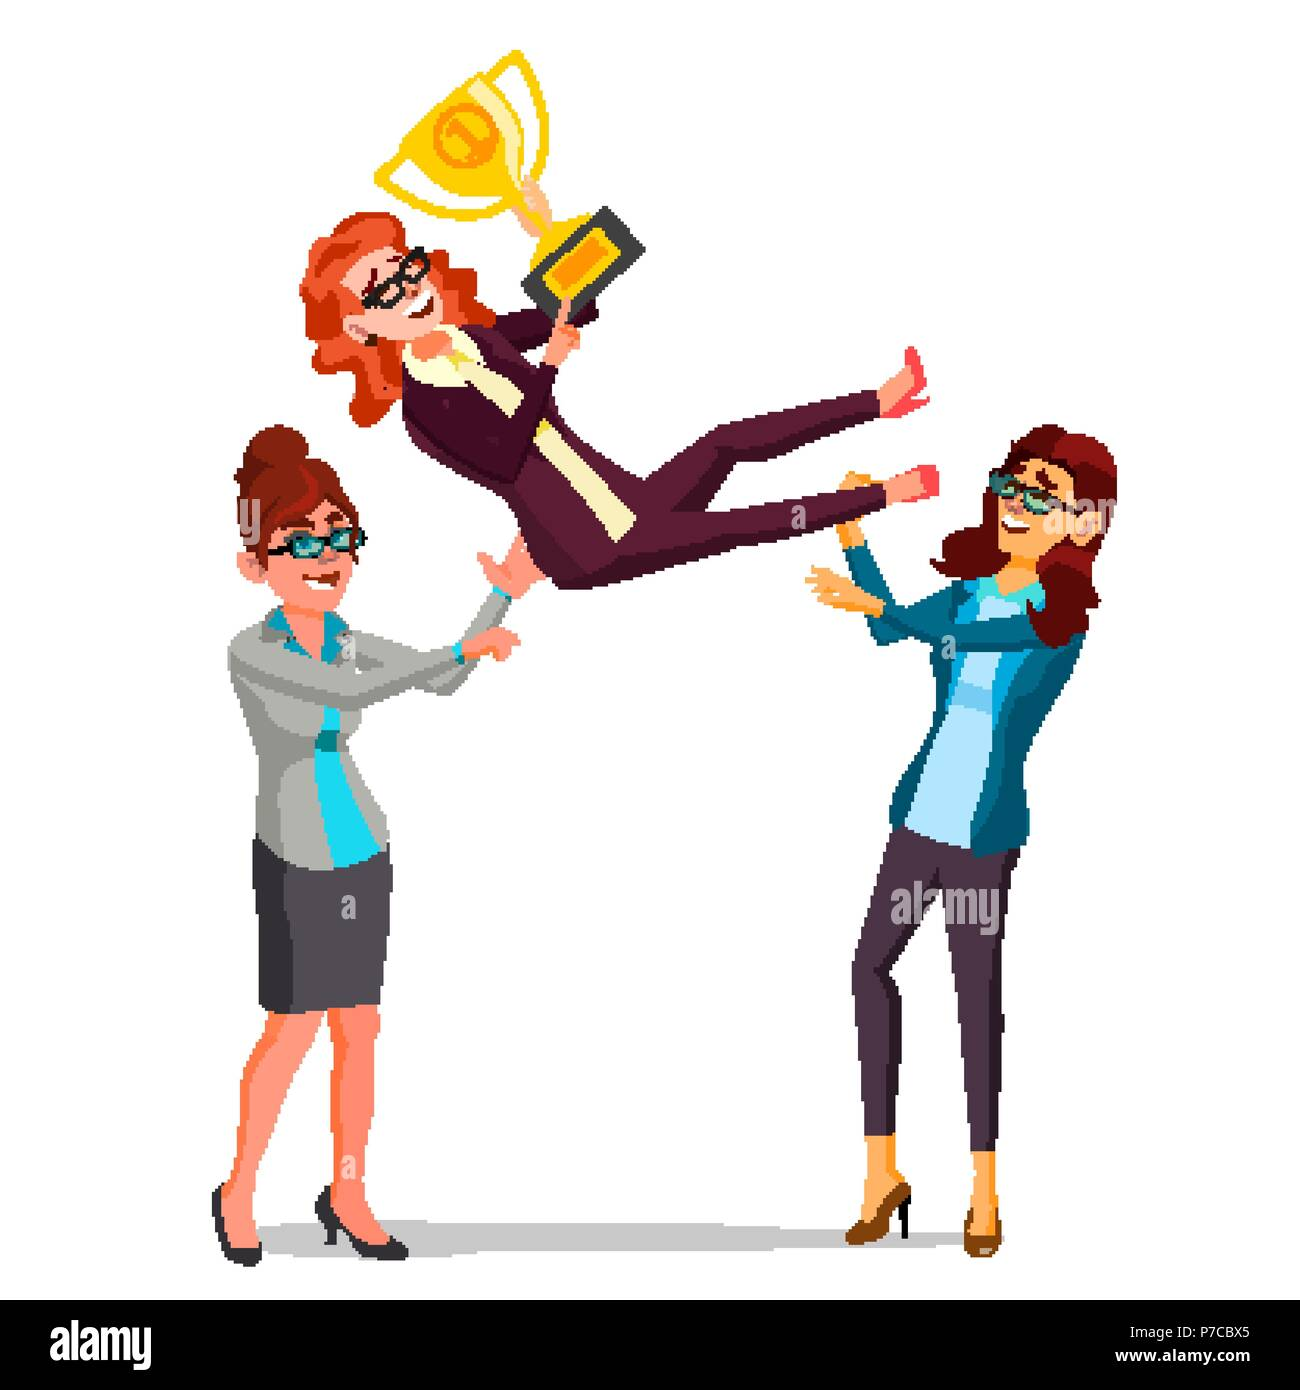 Winner Business Woman Vector. Throwing Colleague Up. Business People Celebrating Victory. With Golden Trophy. First. Prize. Flat Cartoon Illustration - Stock Vector